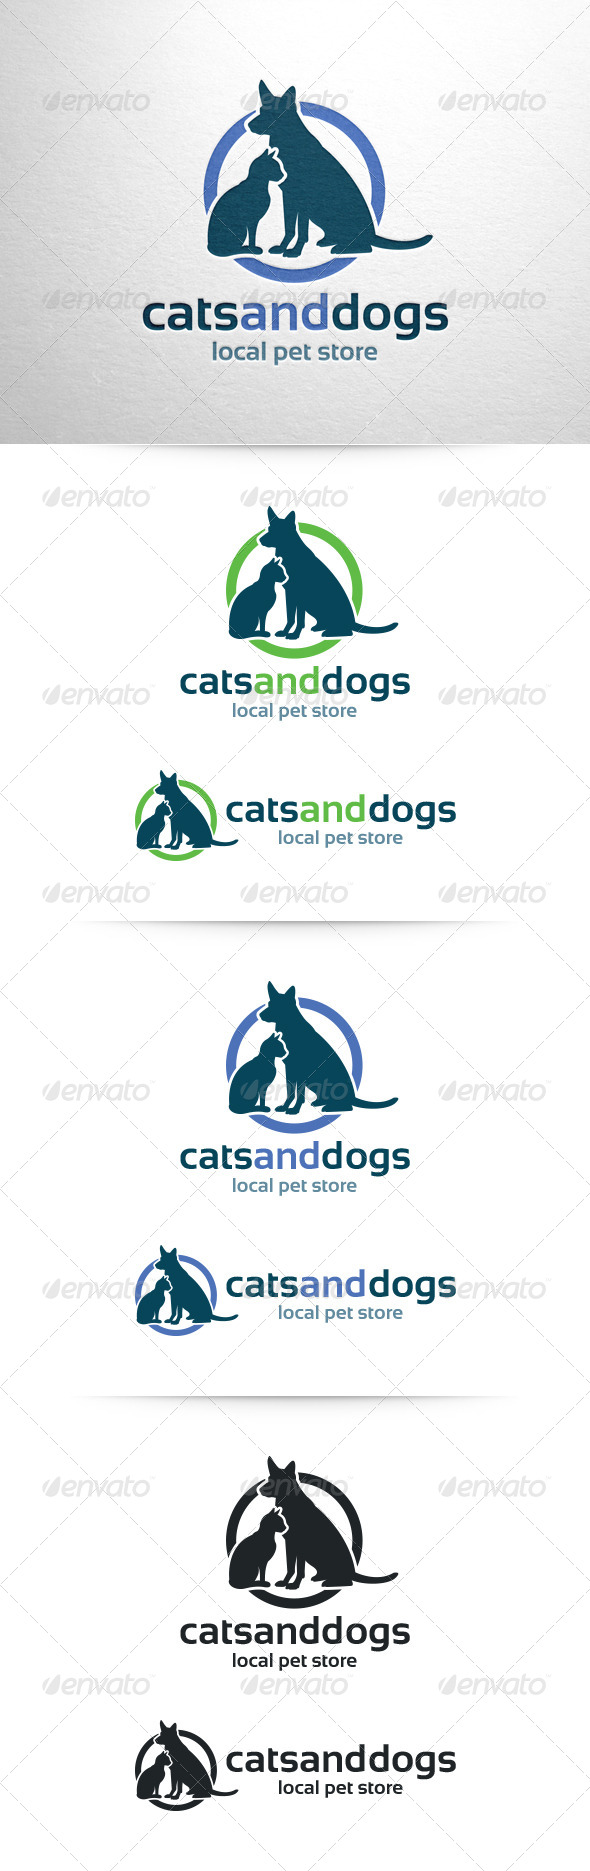 Cats and Dogs Logo Template